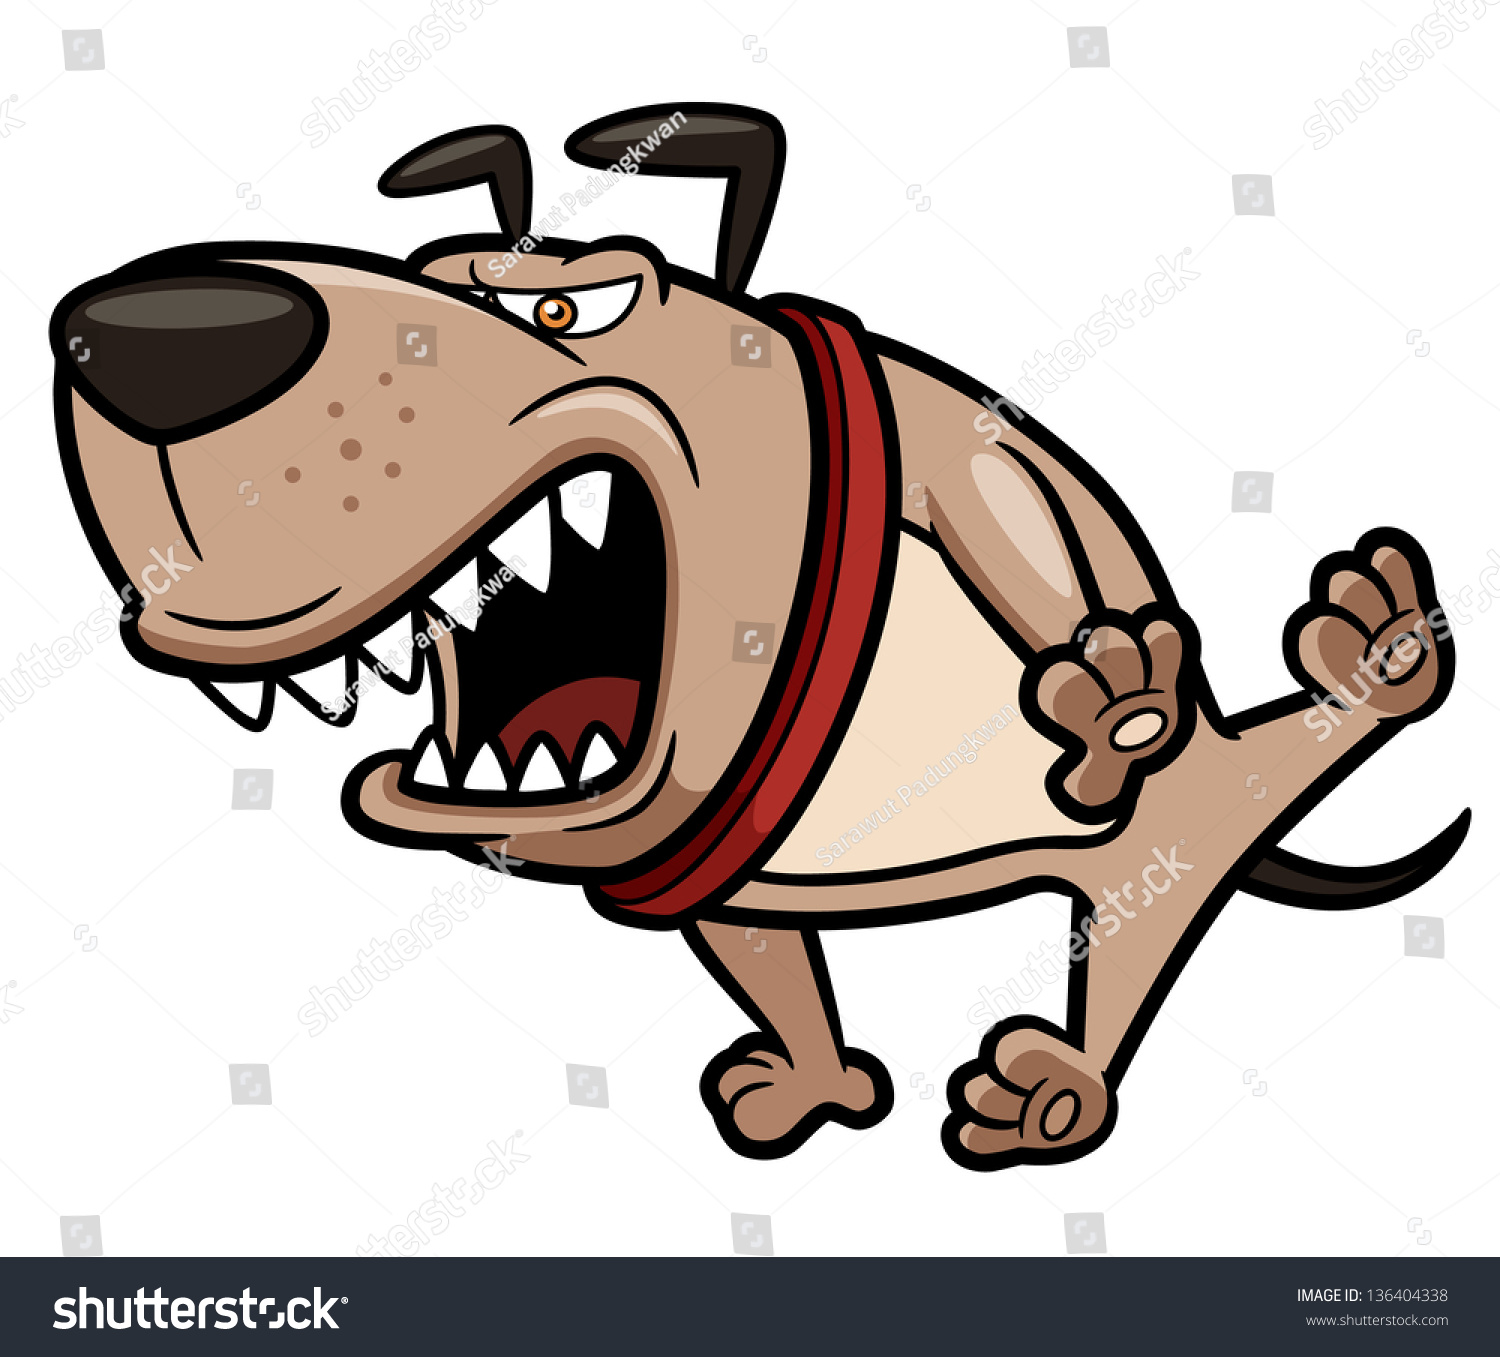 angry dog clip art - photo #14